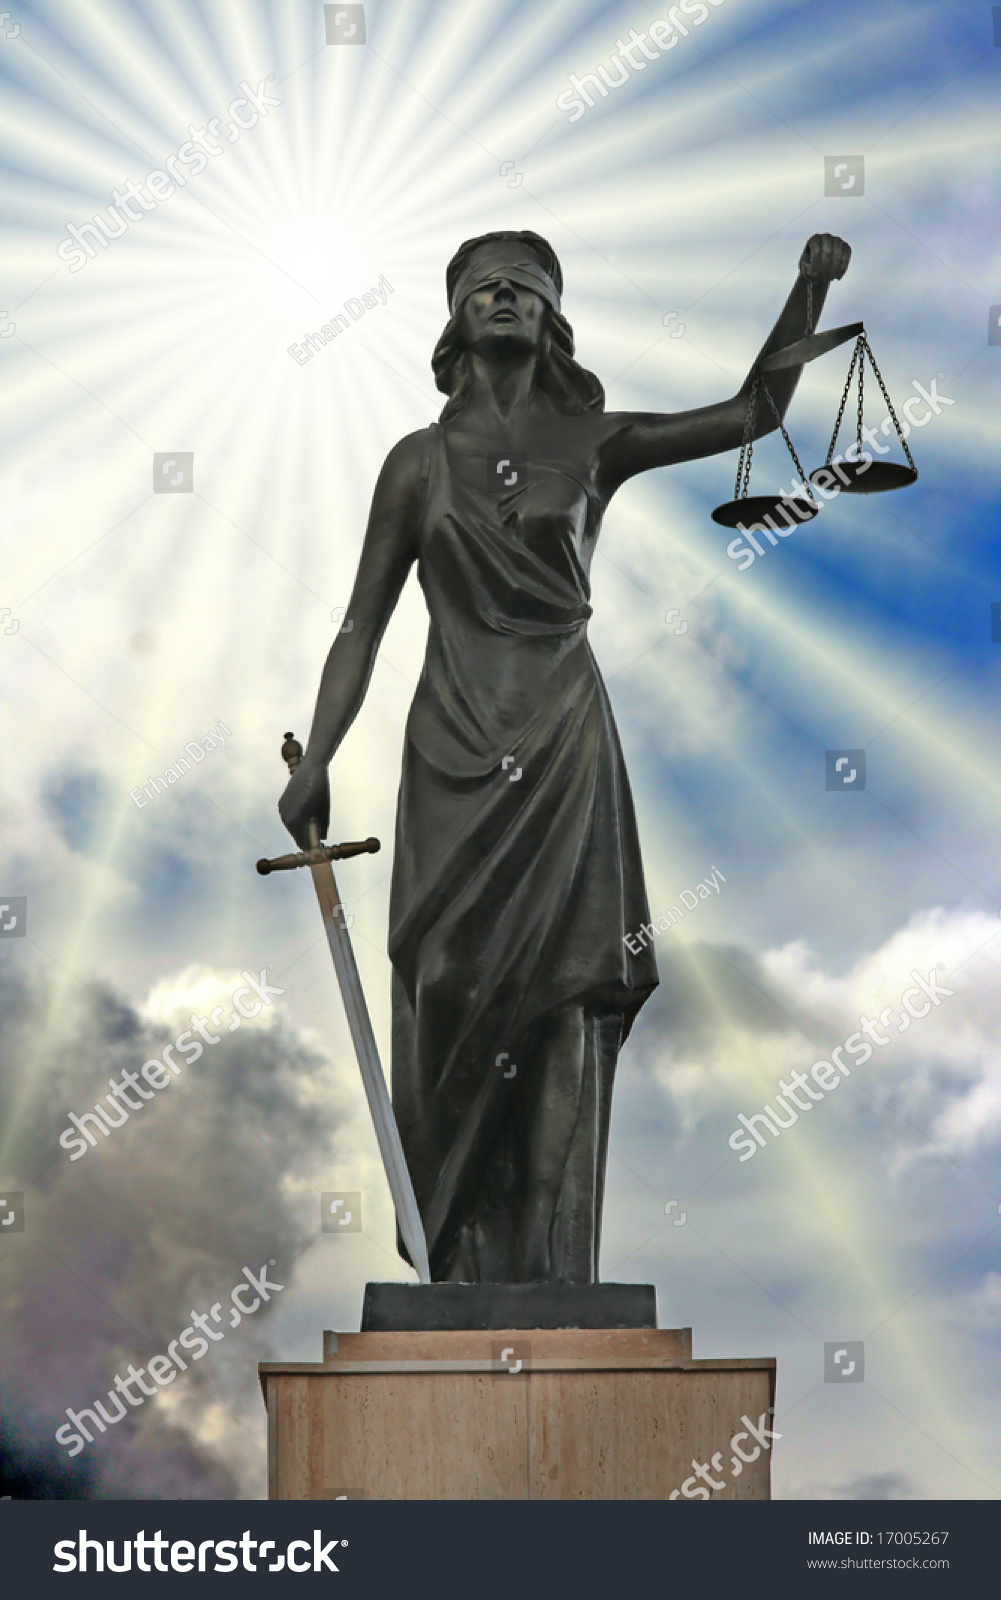 Justice Is Blind Tattoo Flickr Photo Sharing Upper Arm